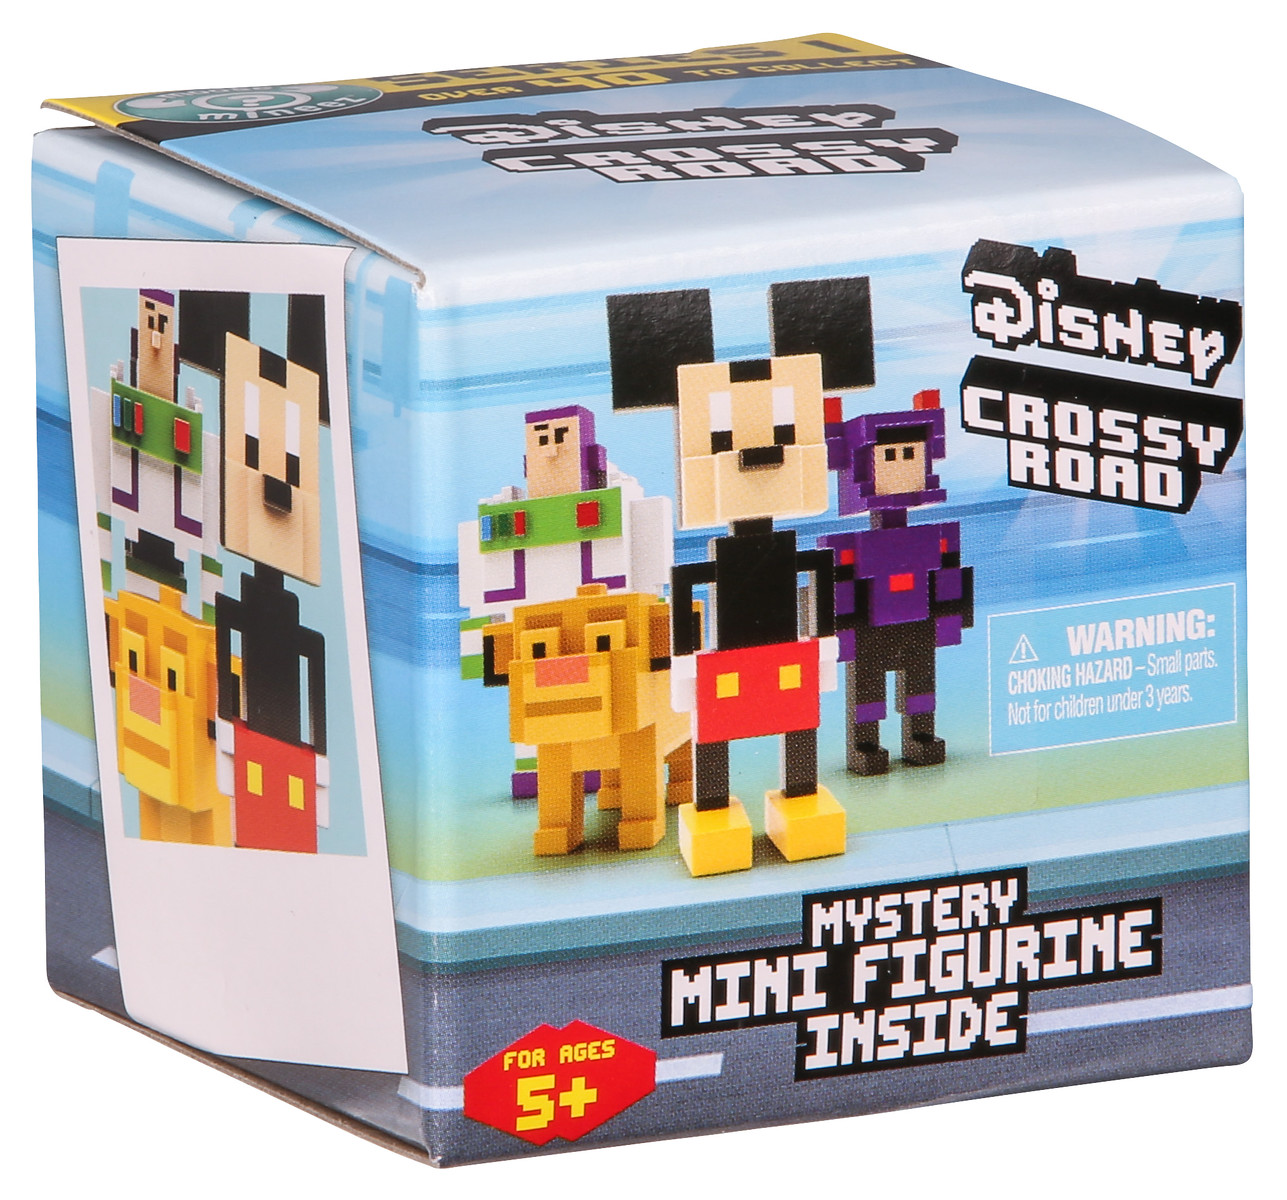 Disney Crossy Road Product Line Launches This April